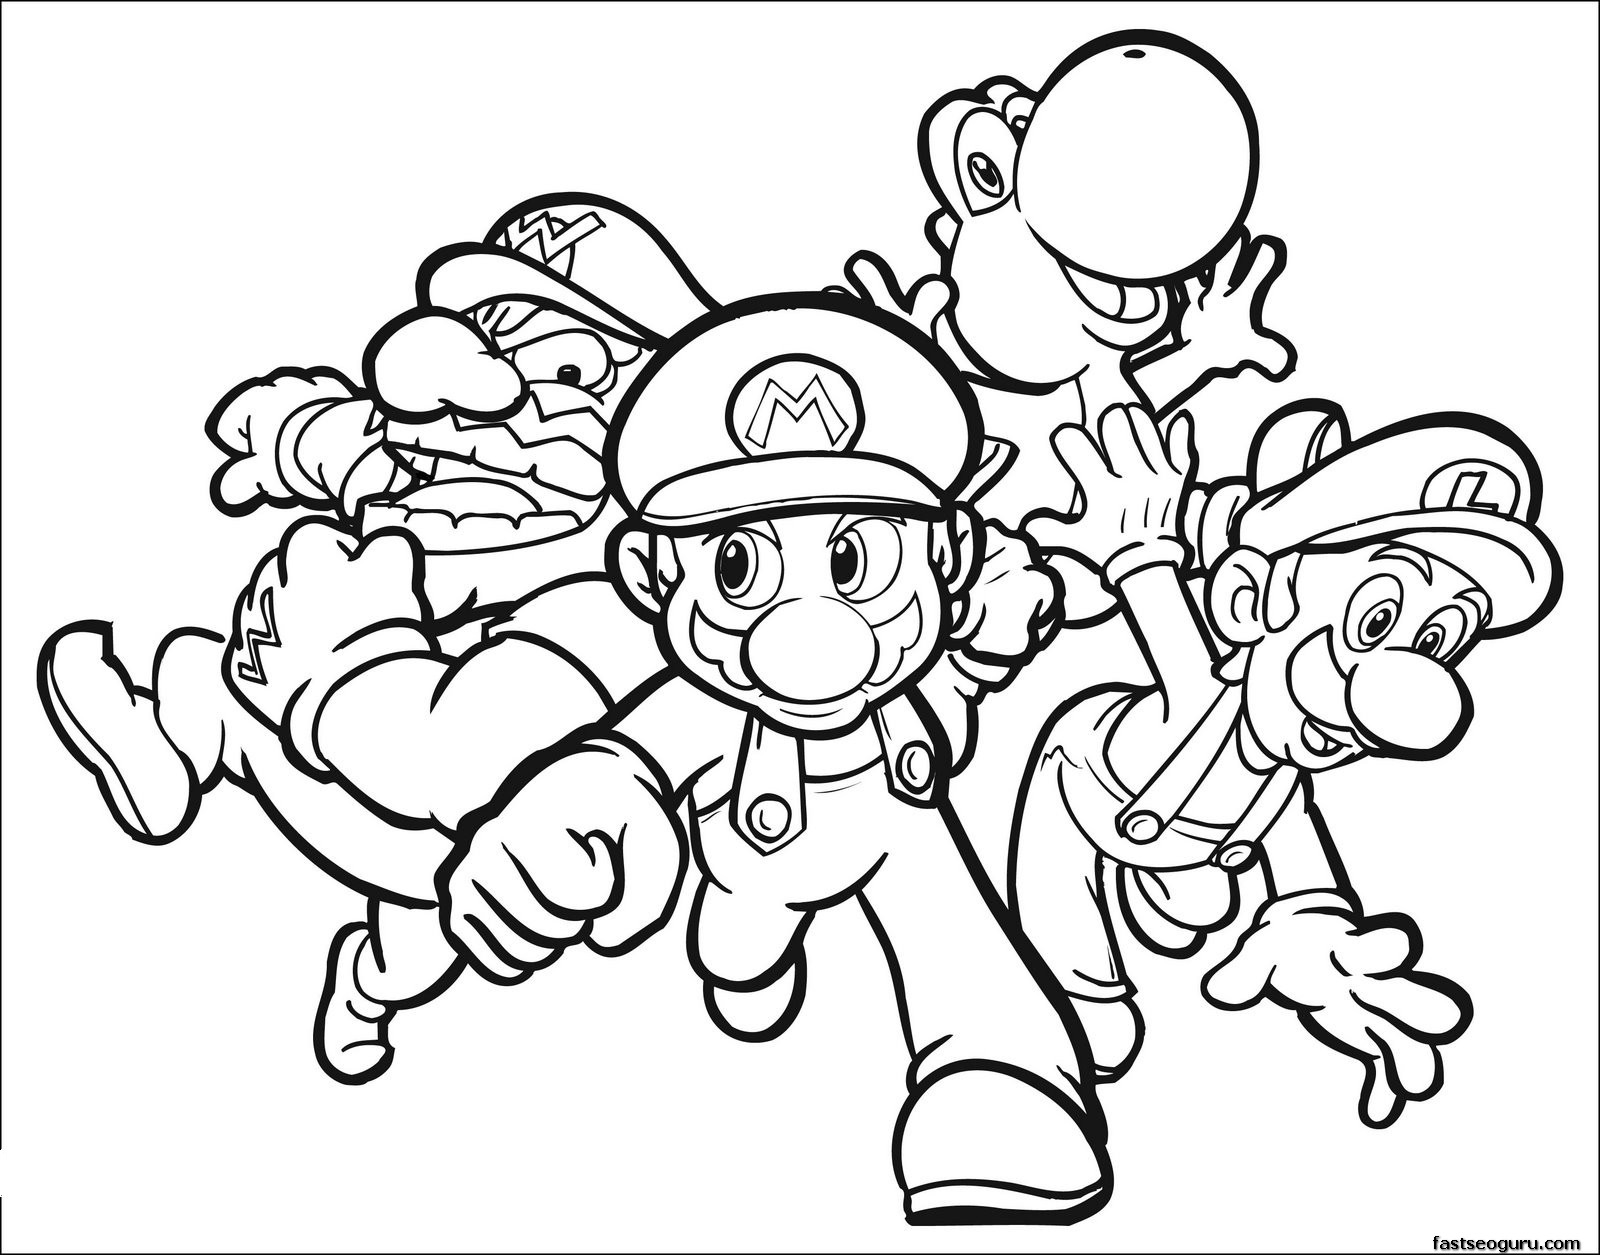 1600x1255 Reward Cool Coloring Pages To Print Awesome Co